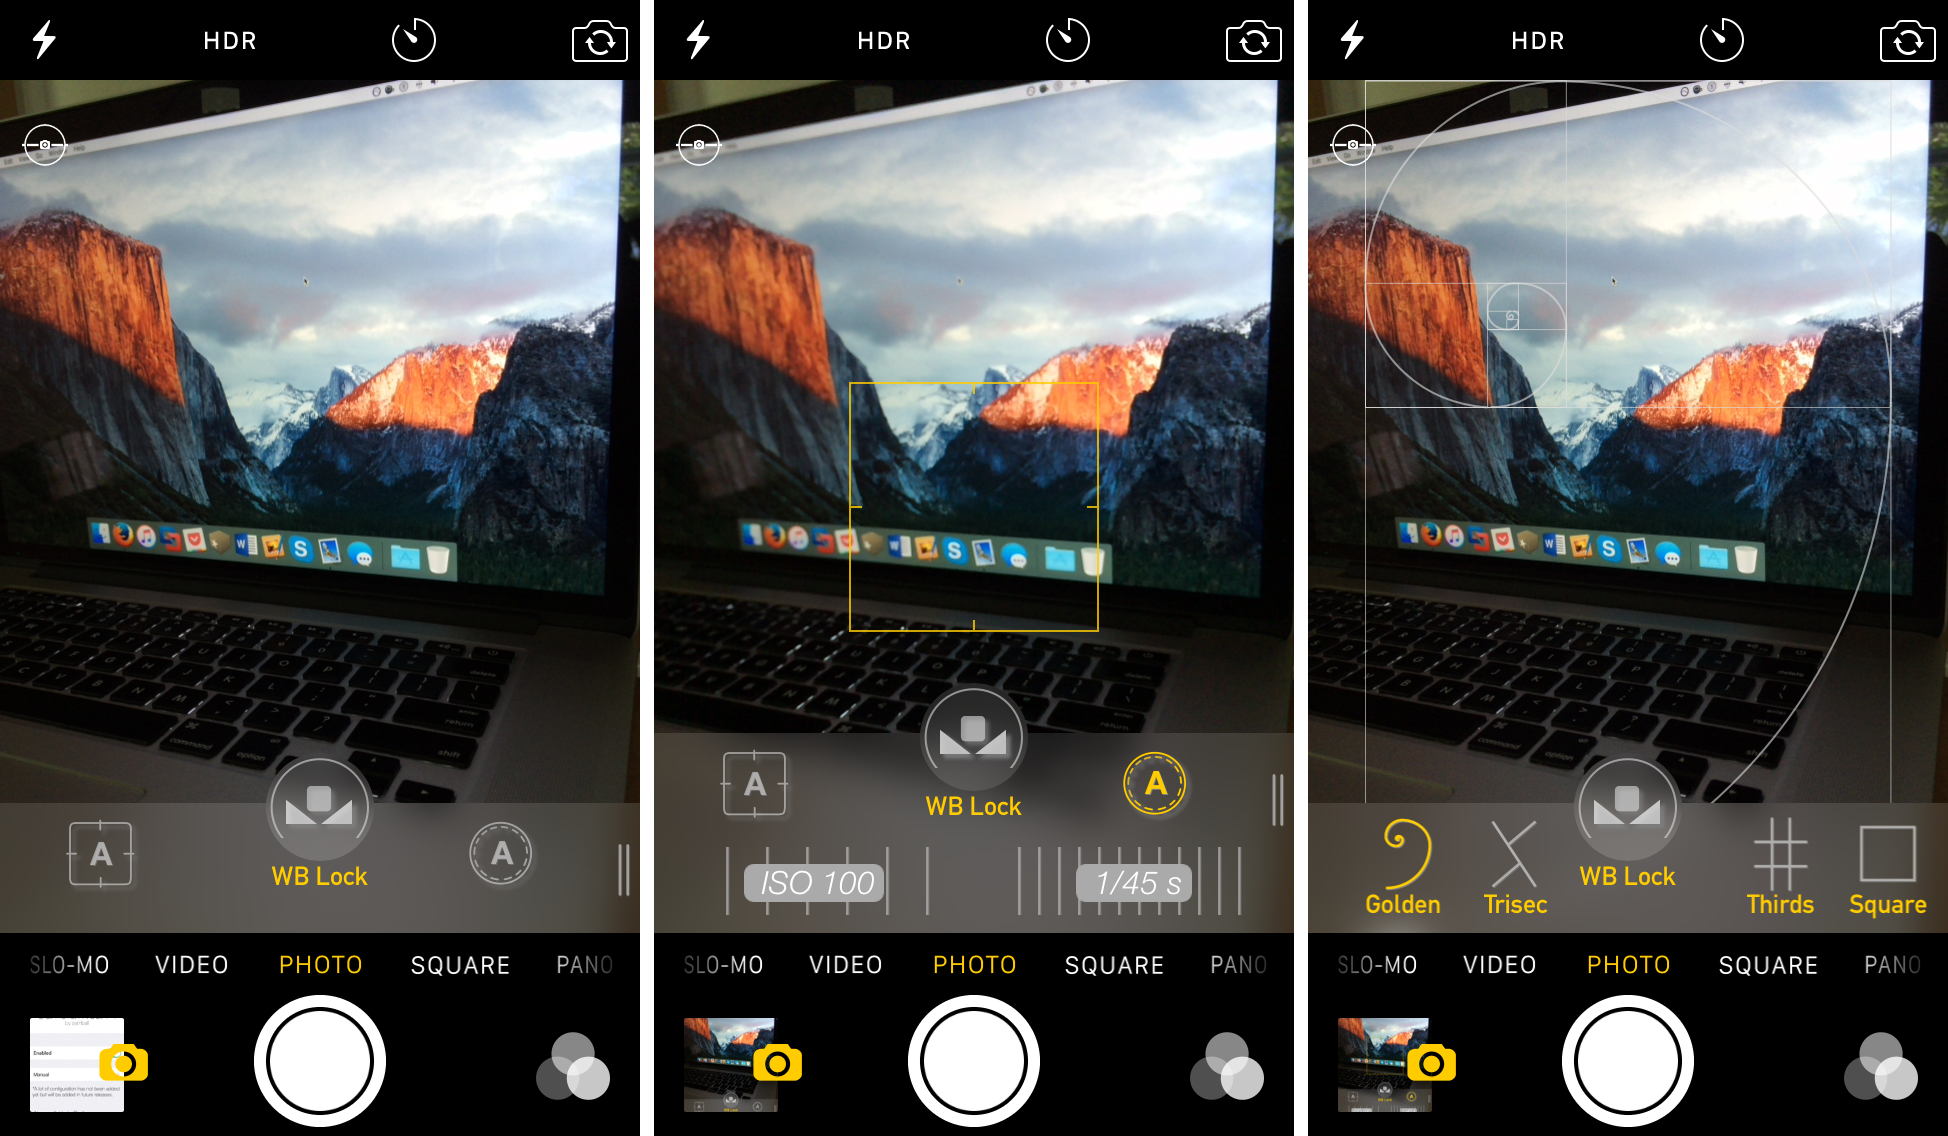 CameraTweak 4 launches in Cydia, turns iPhone into a professional camera